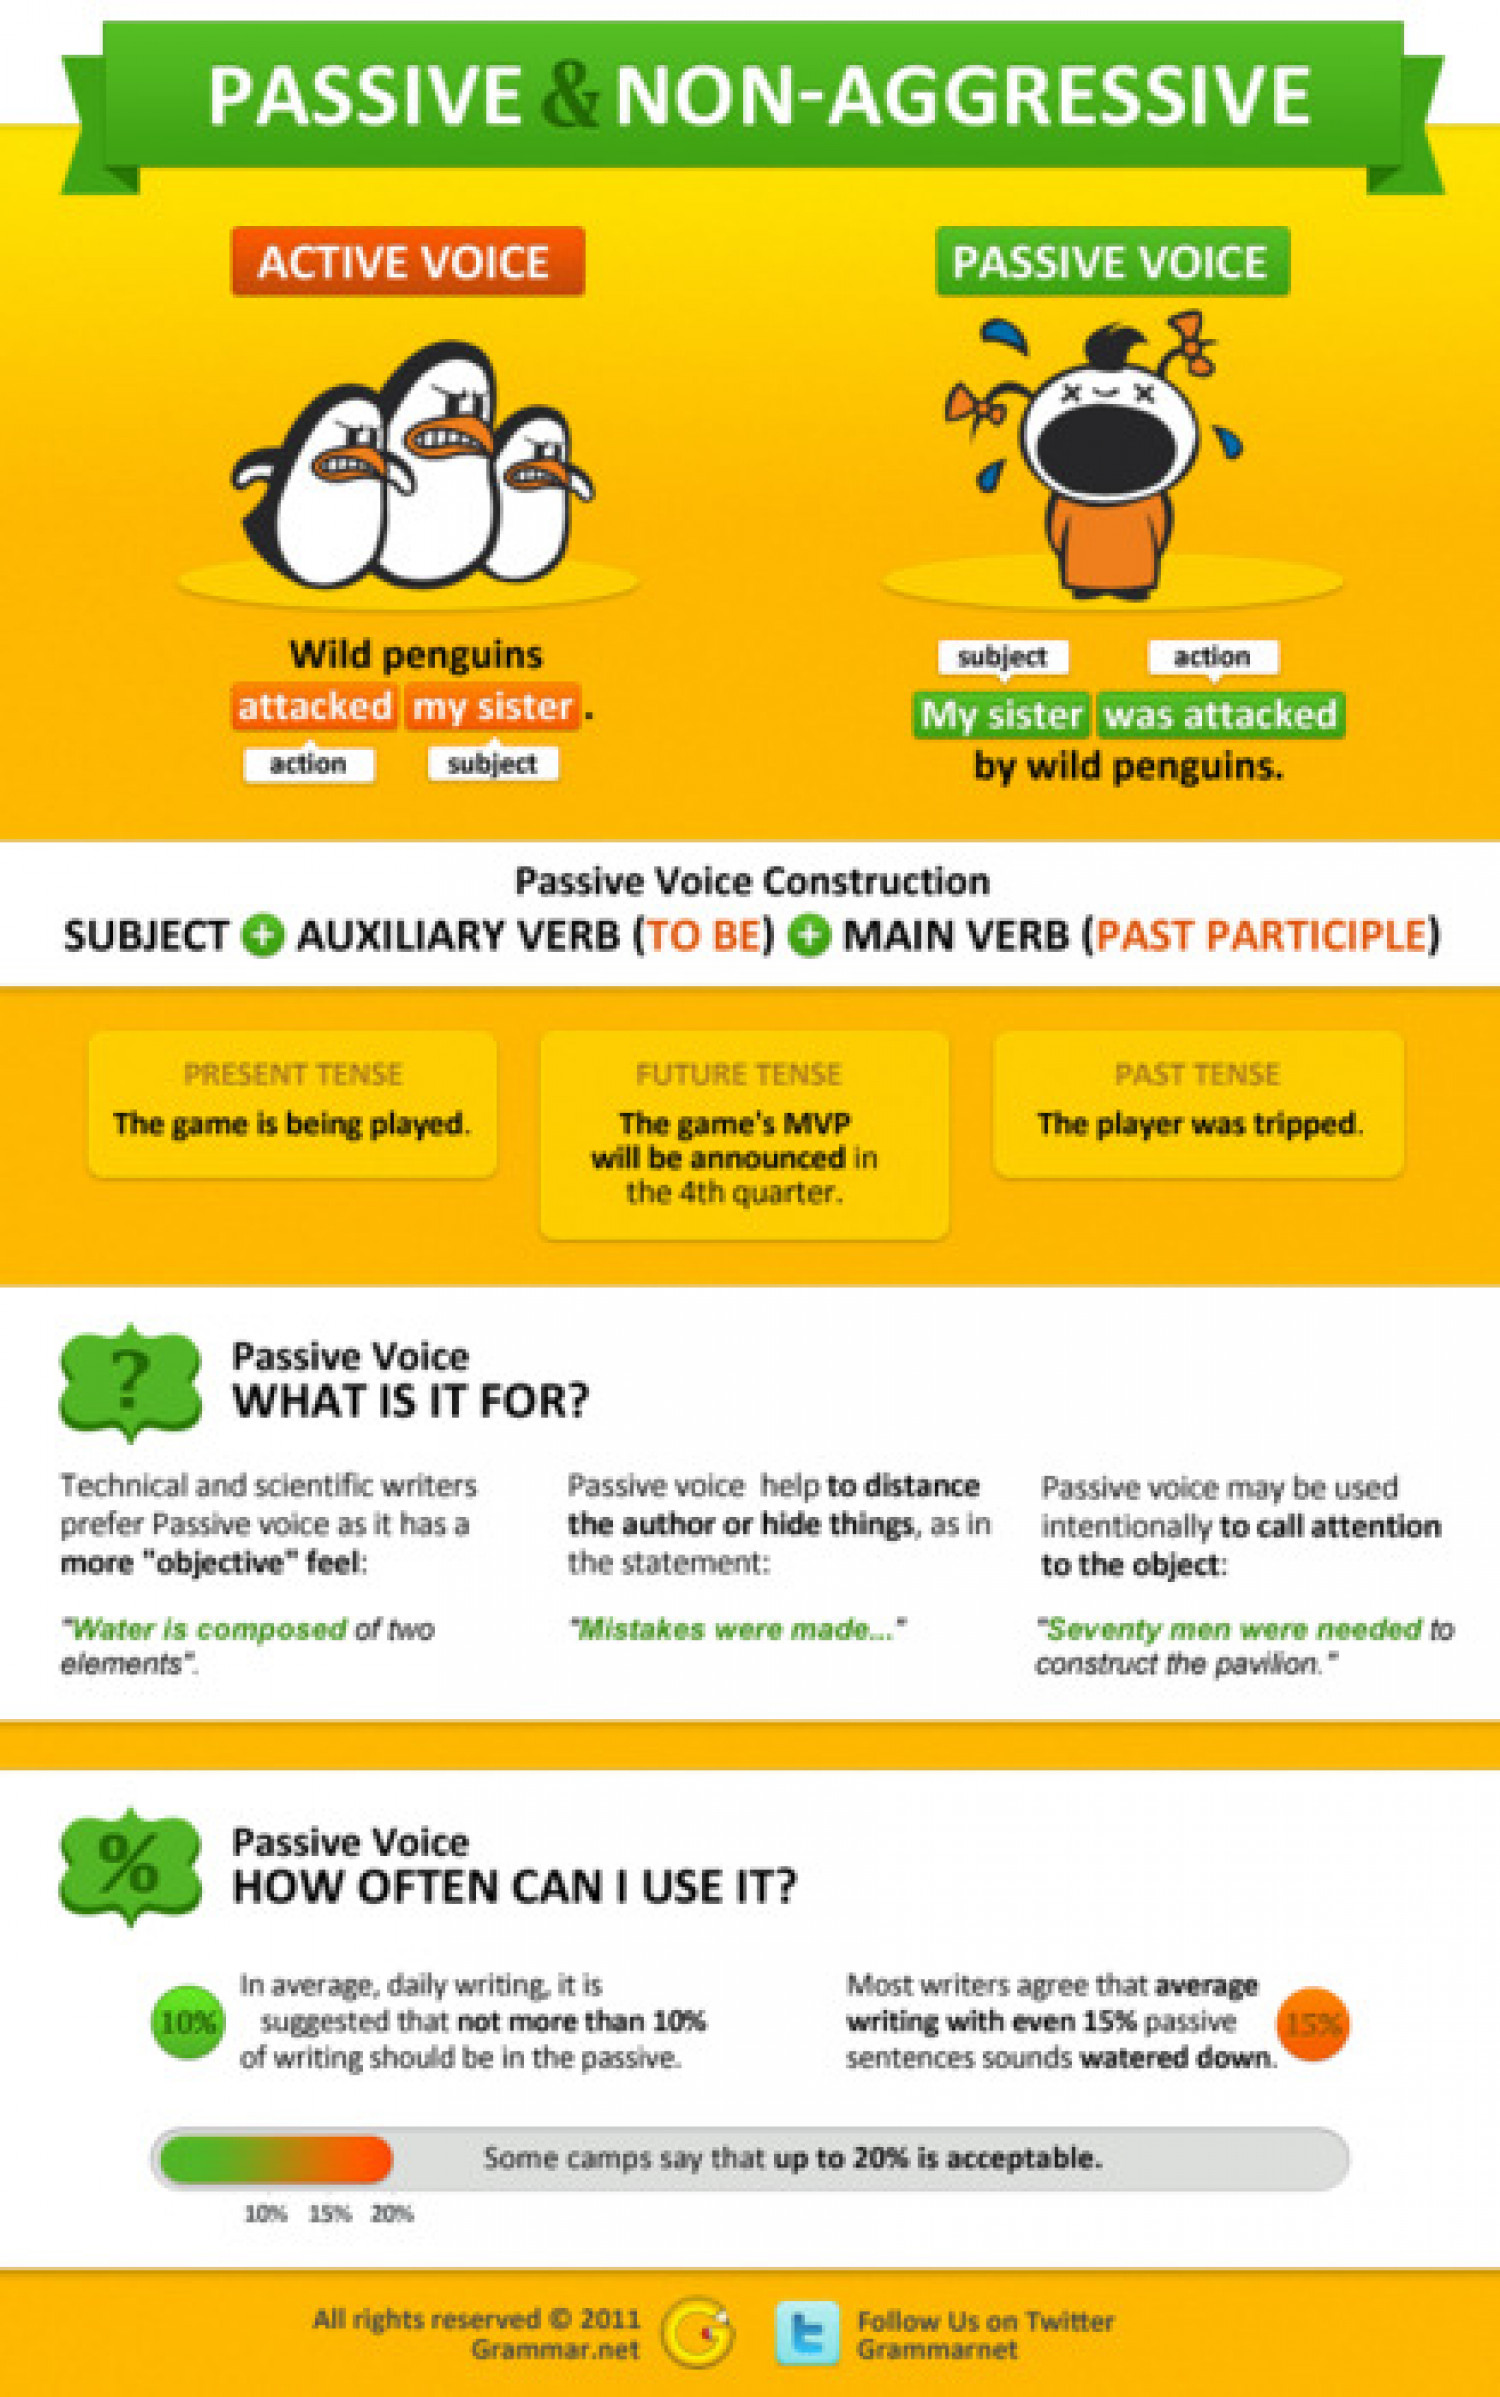 Passive and Non-aggressive Voice Infographic